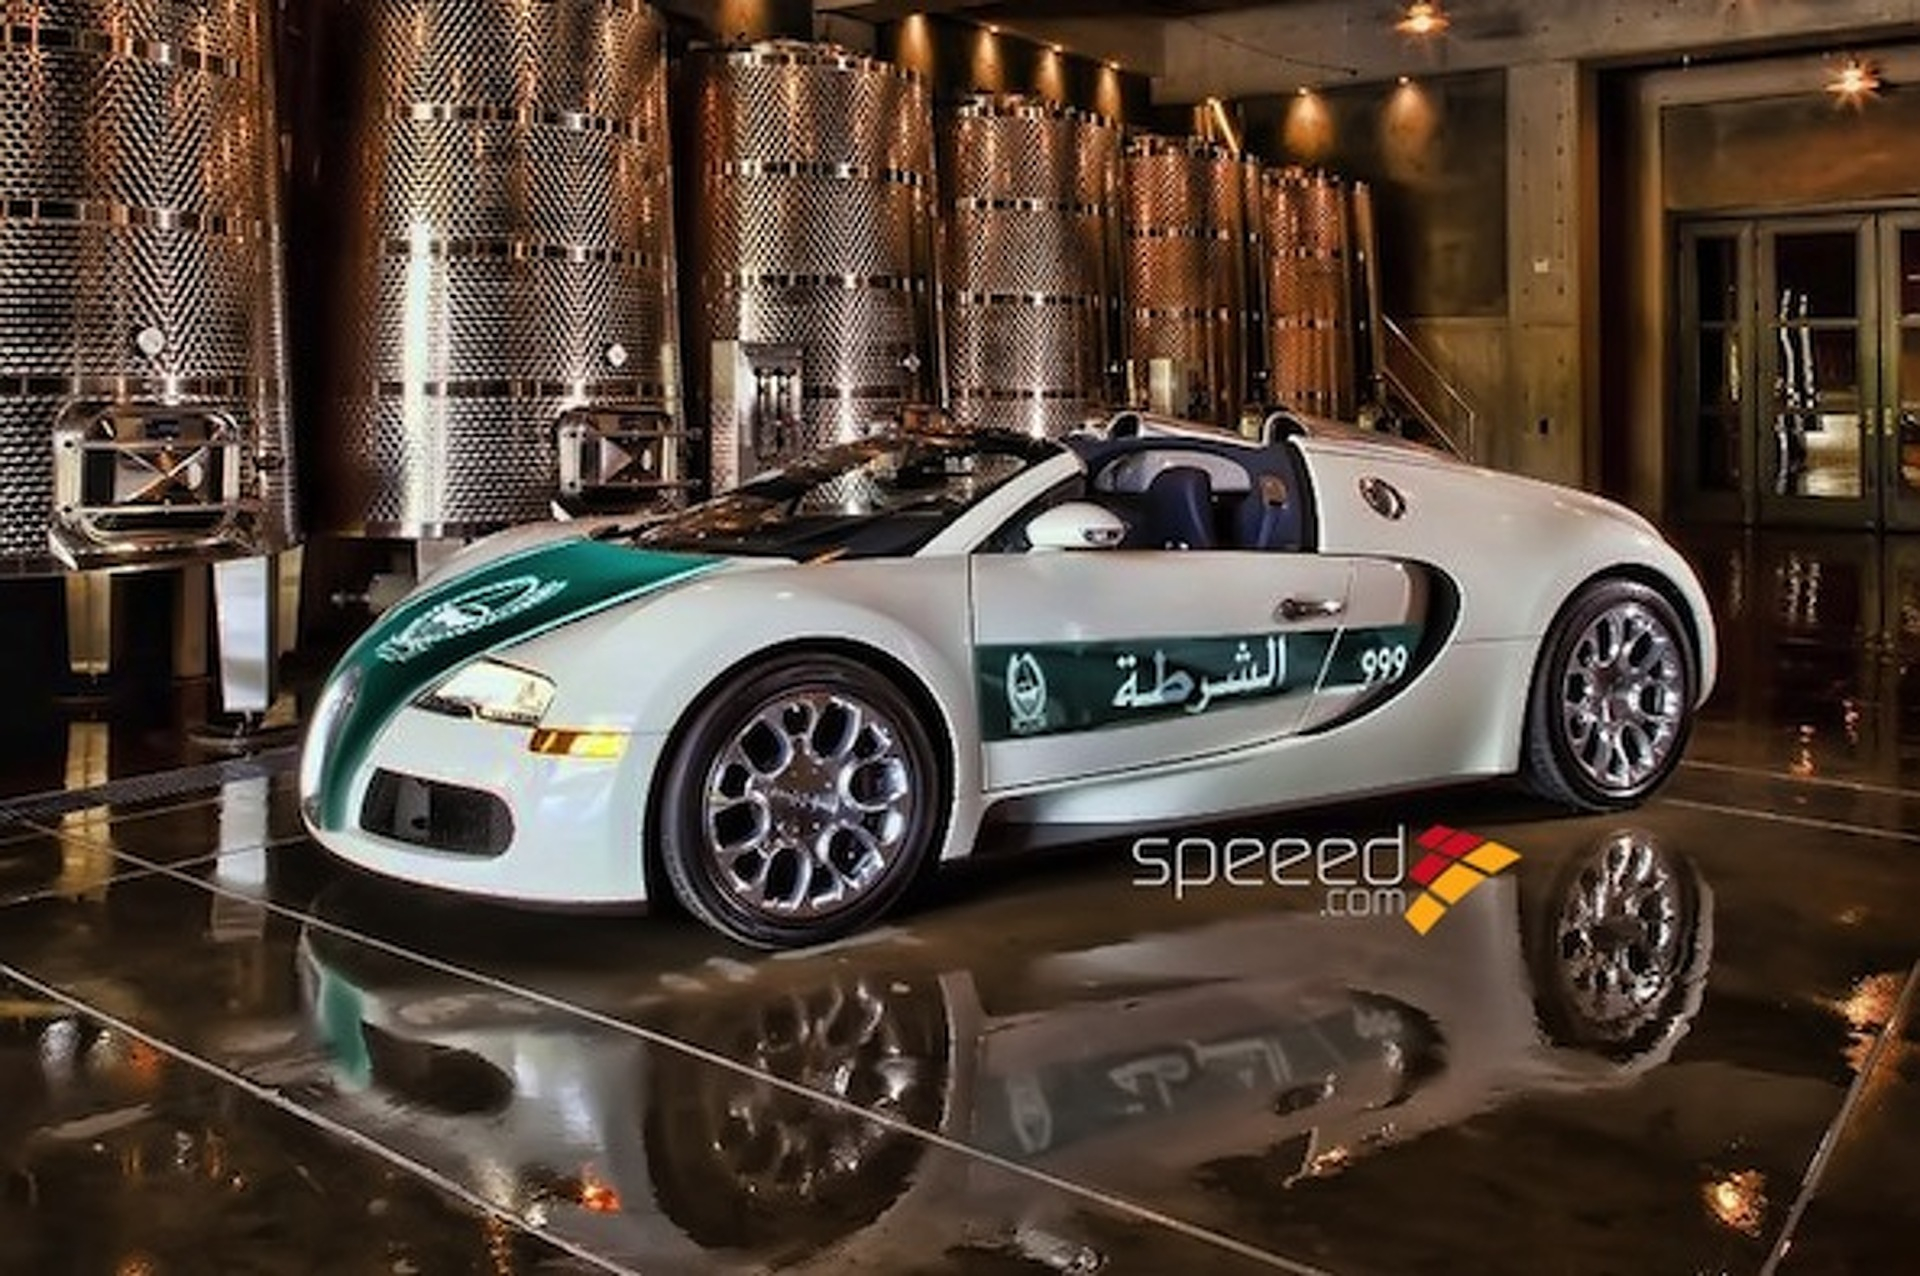 Watch The Dubai Police Fleet of Supercars In Action